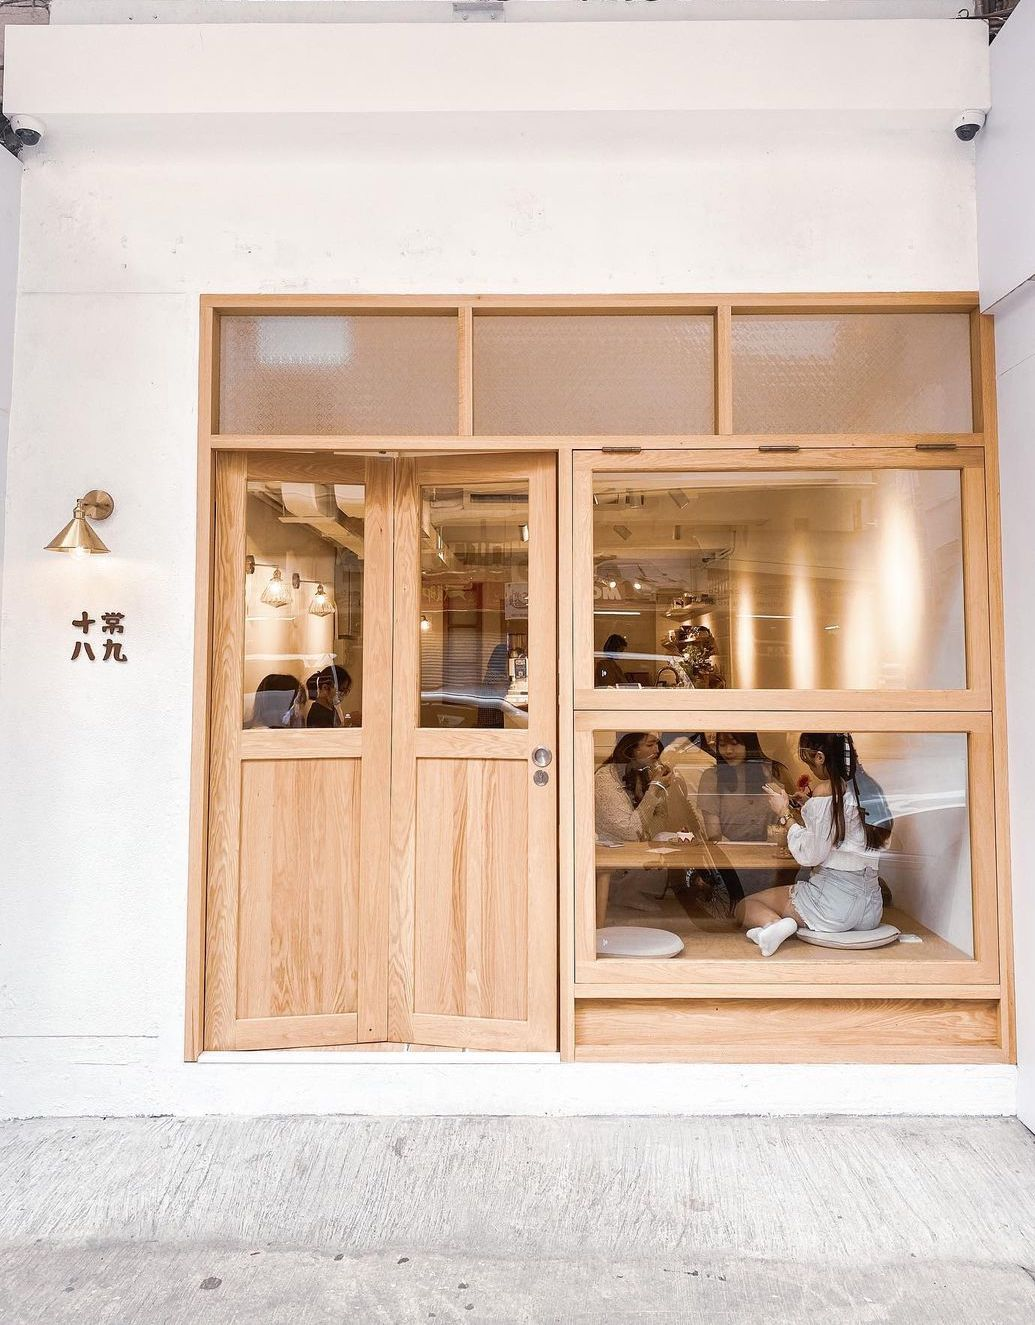 The Best Cafes And Coffee Shops In Sham Shui Po